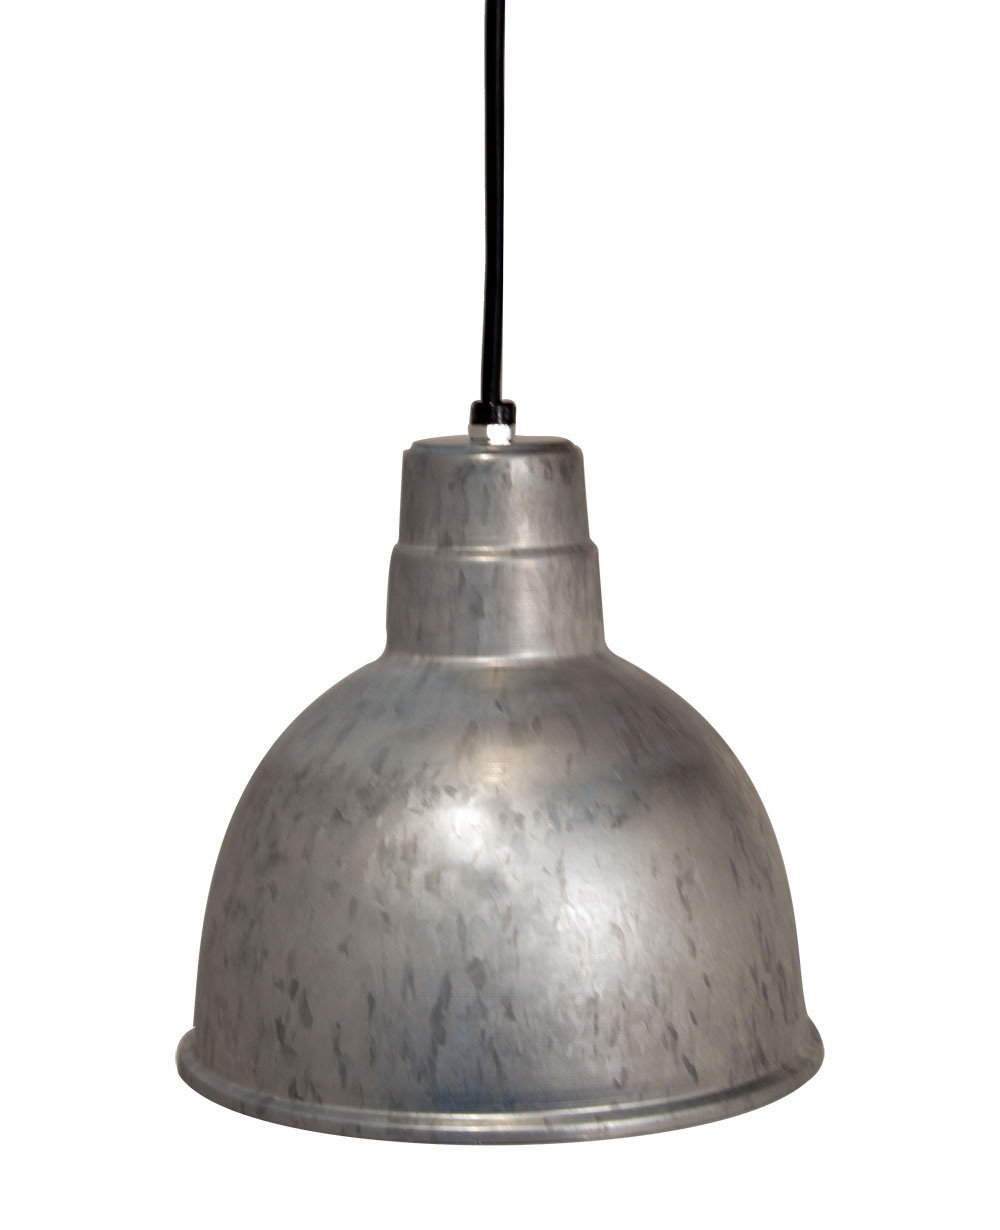 Newest Outdoor Barn Ceiling Lights In Home Decor: Perfect Galvanized Barn Light To Complete Stunning (View 12 of 20)